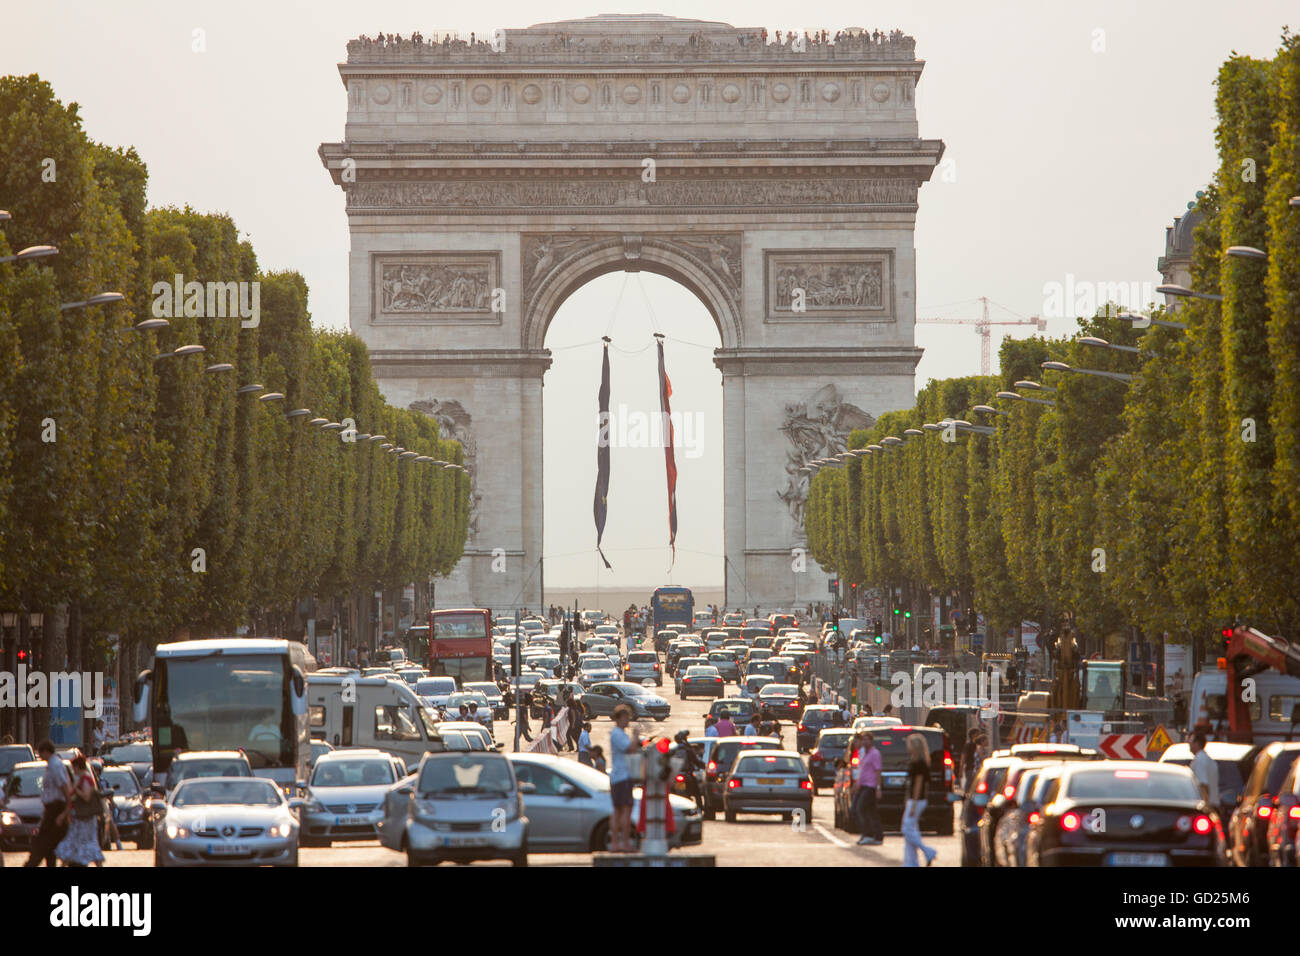 Champs Elysees and Arc de Triomphe, Paris, France, Europe - Stock Image